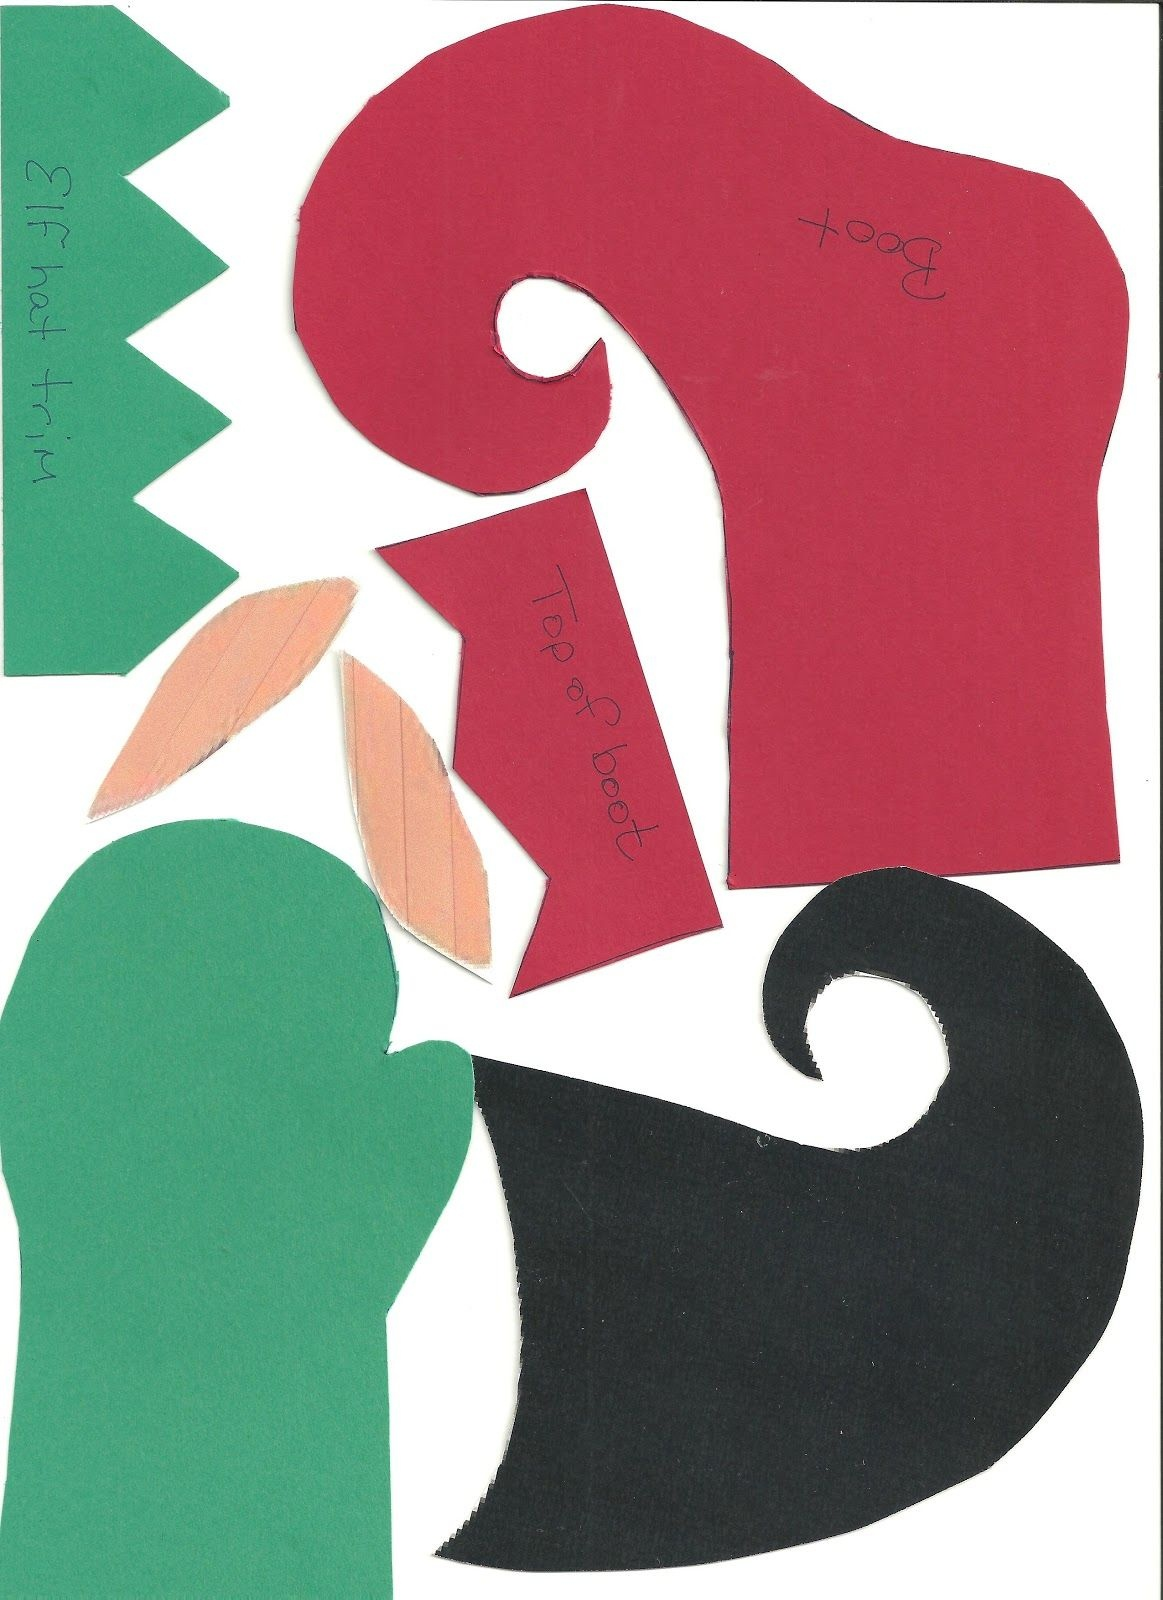 Free Printable Template For Making An Elf With A Picture Of Your - Free Printable Elf Pattern